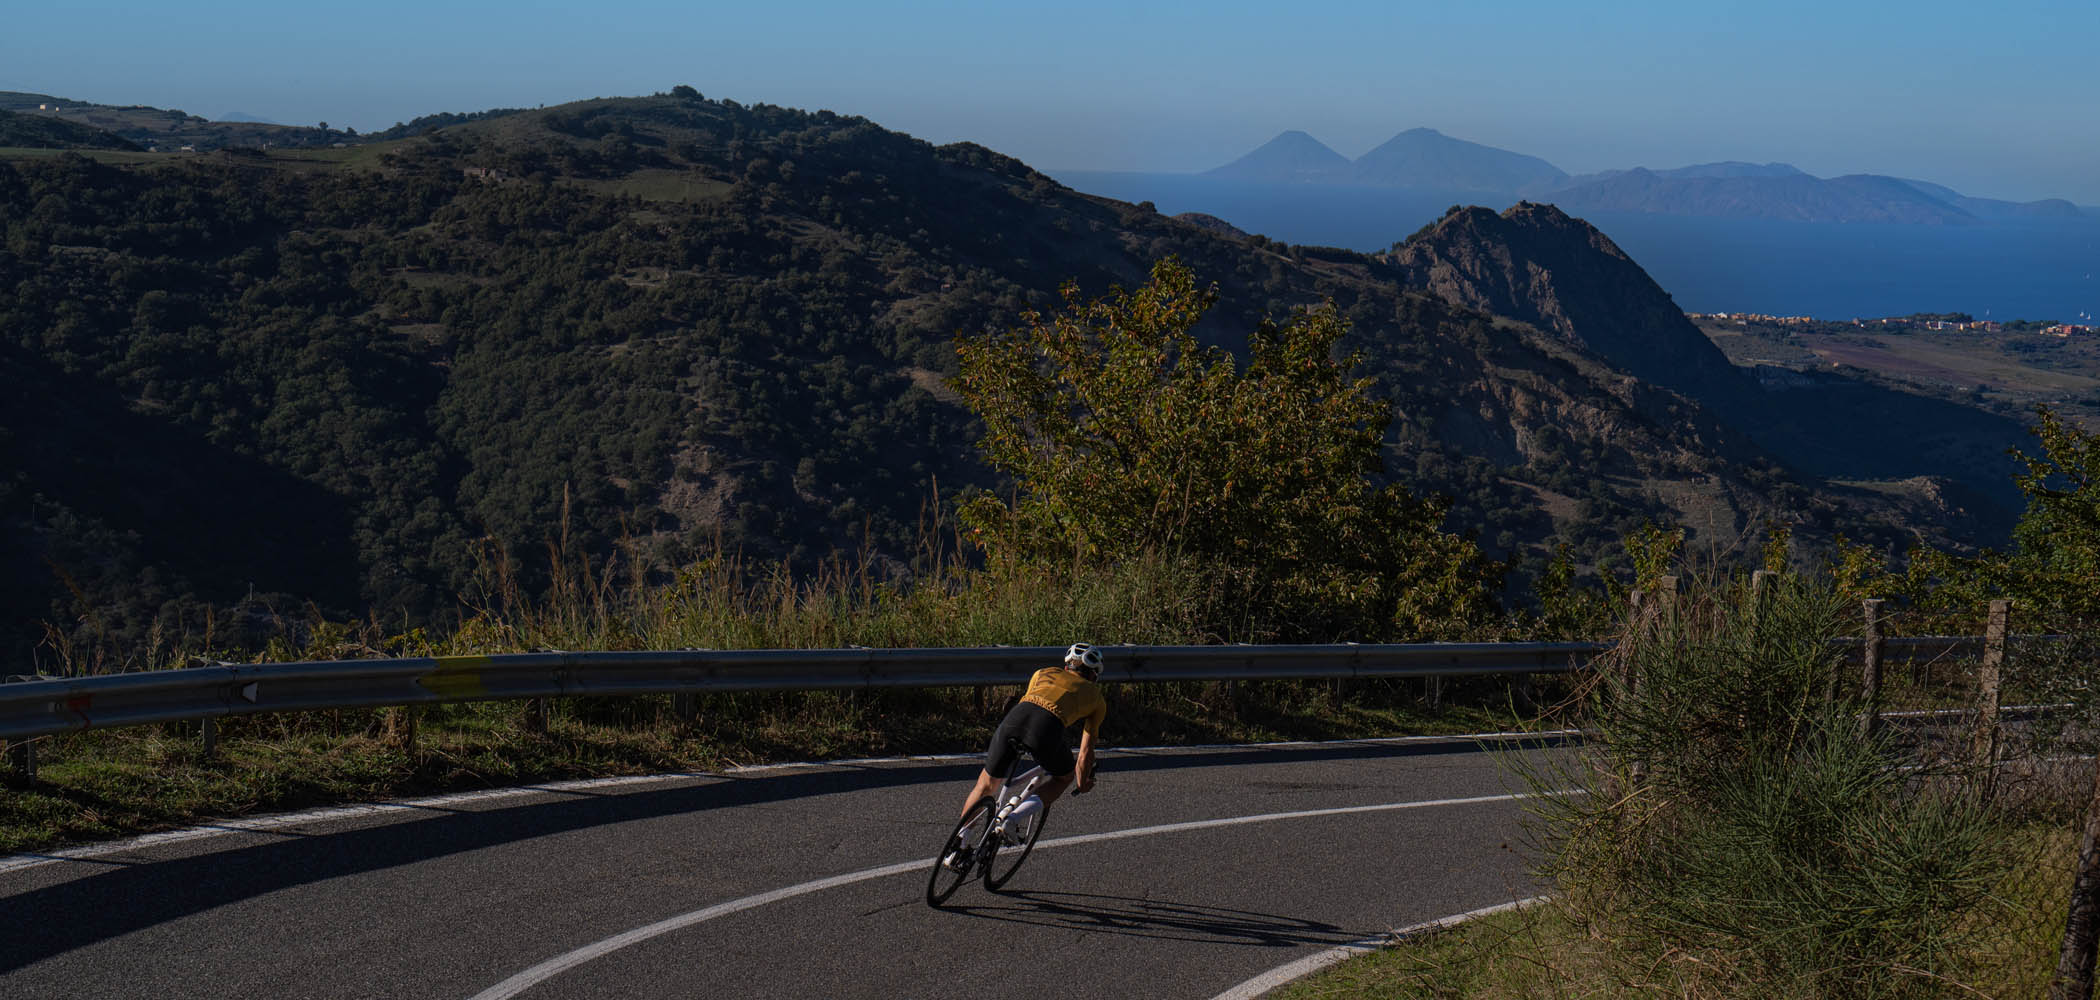 beautiful cycling ride in Sicily with Luxa gold kit